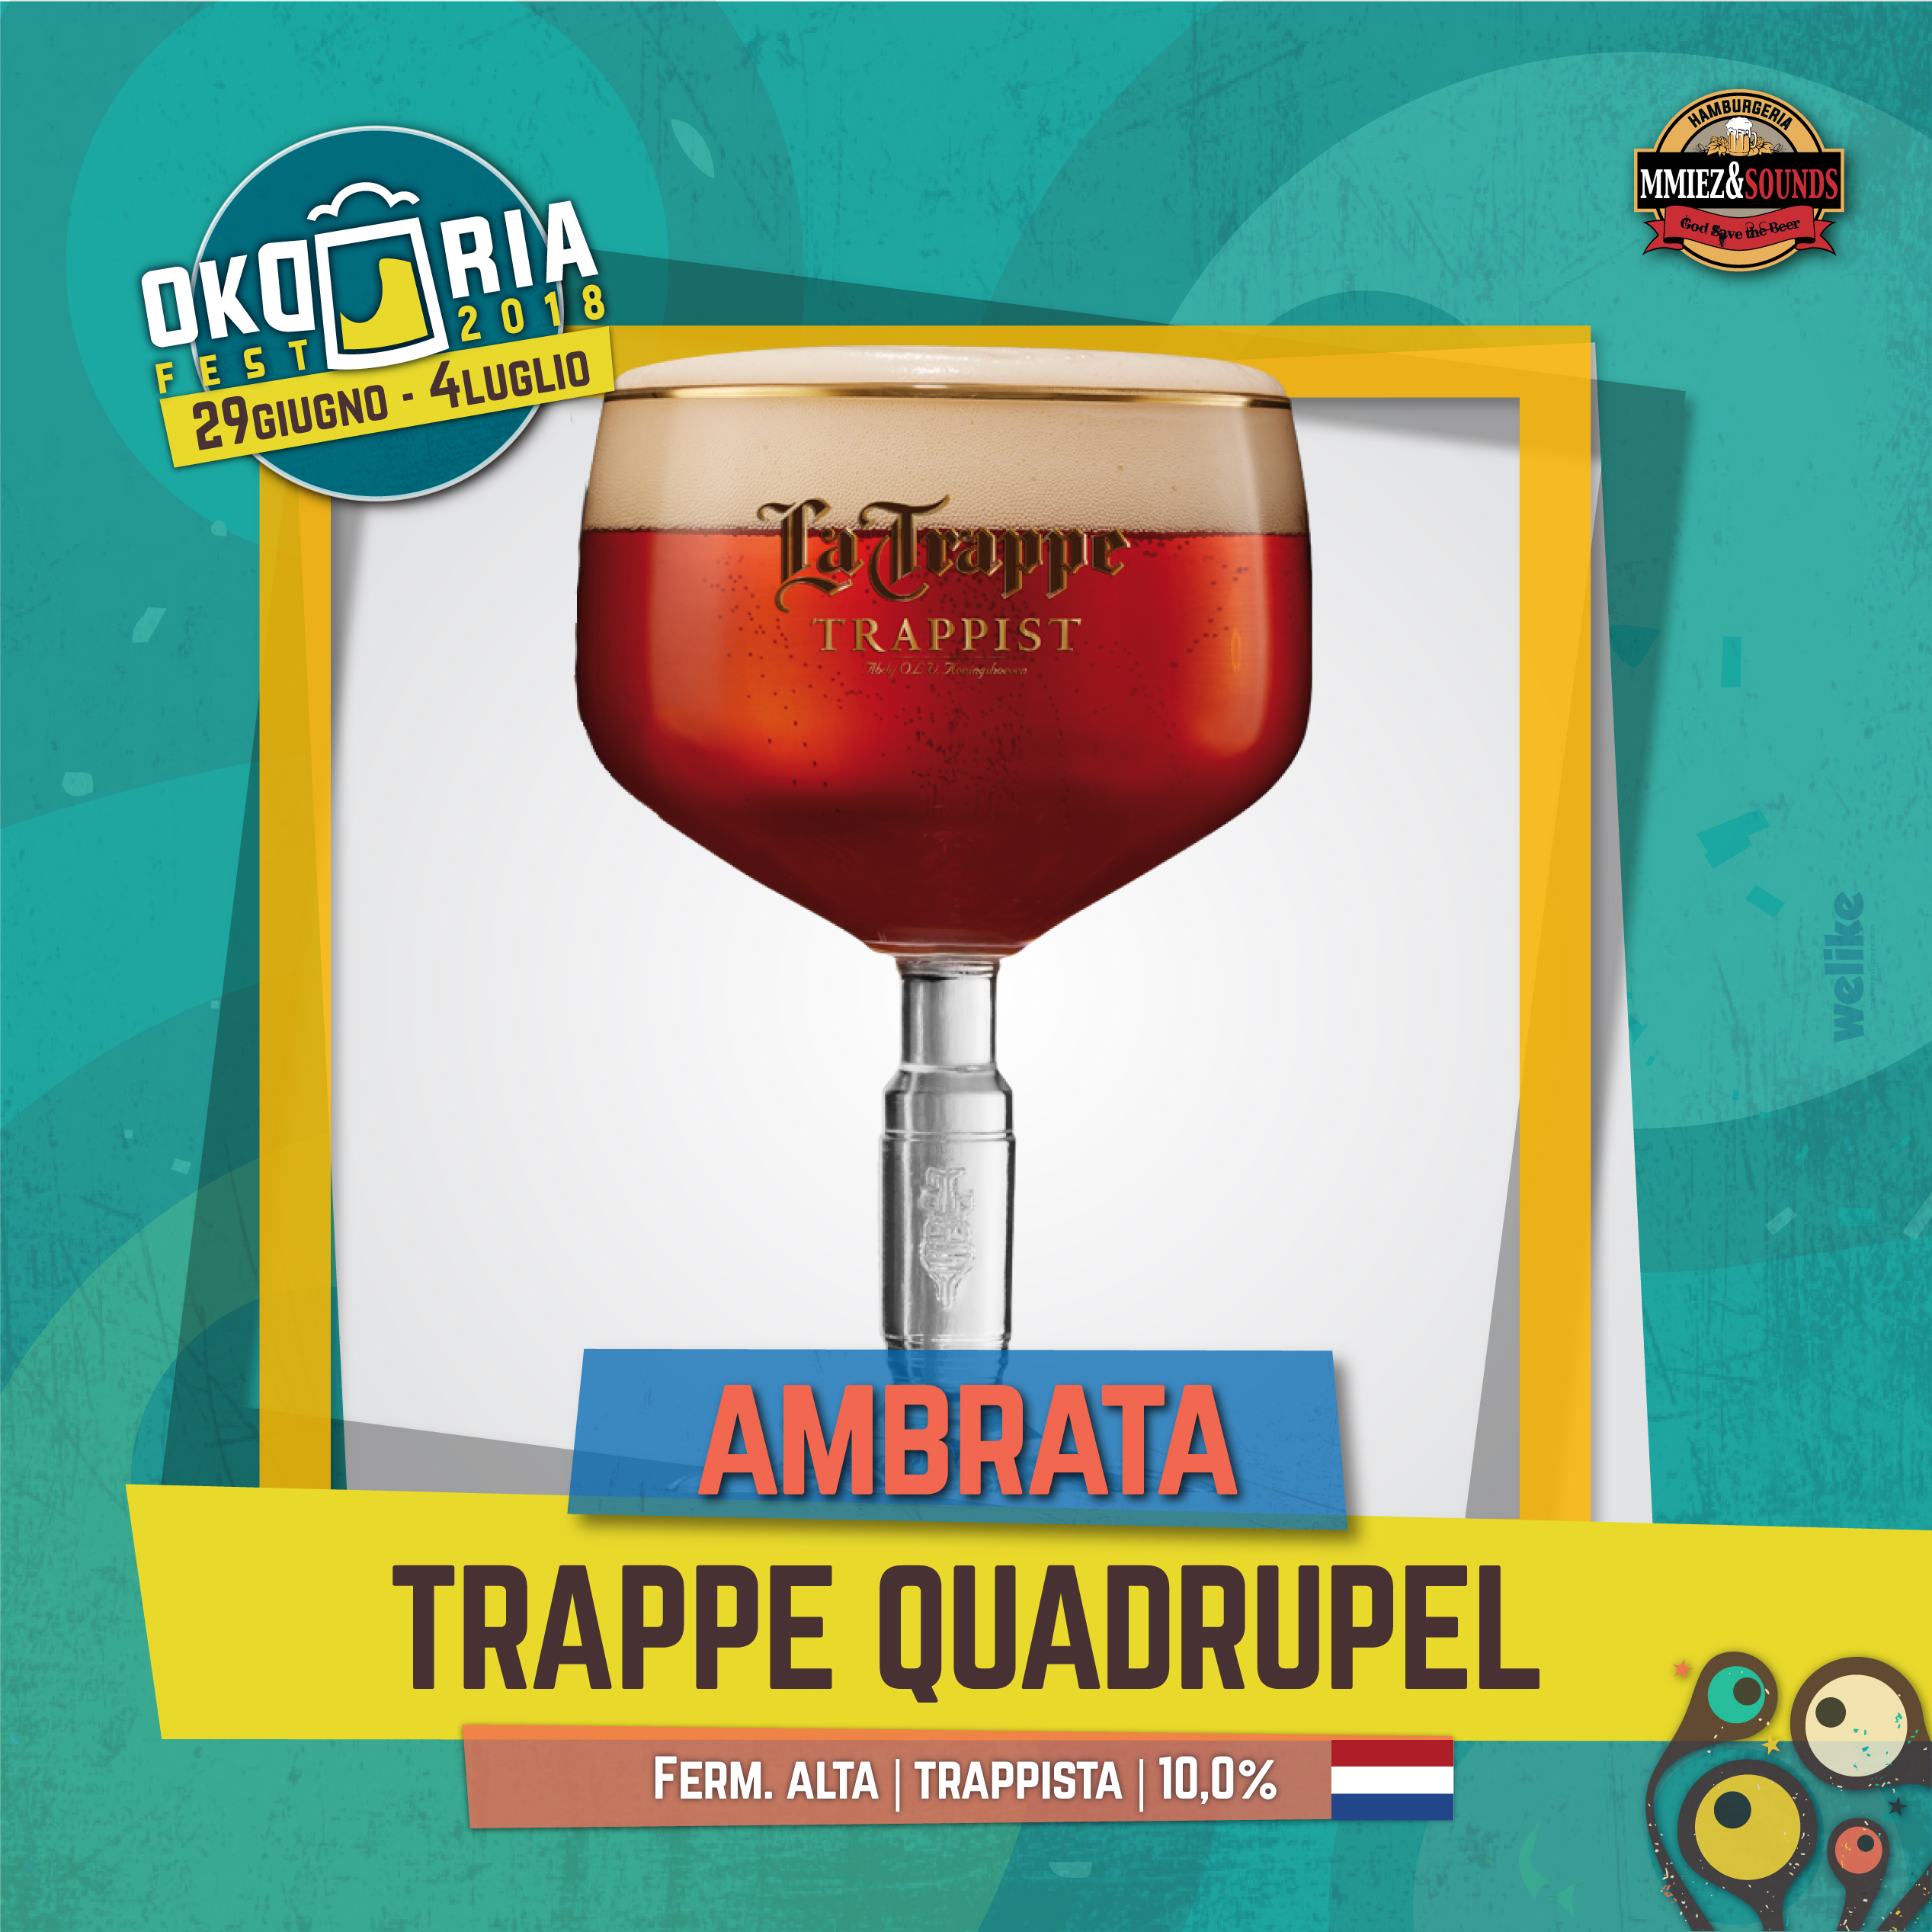 Trappe Quadrupel